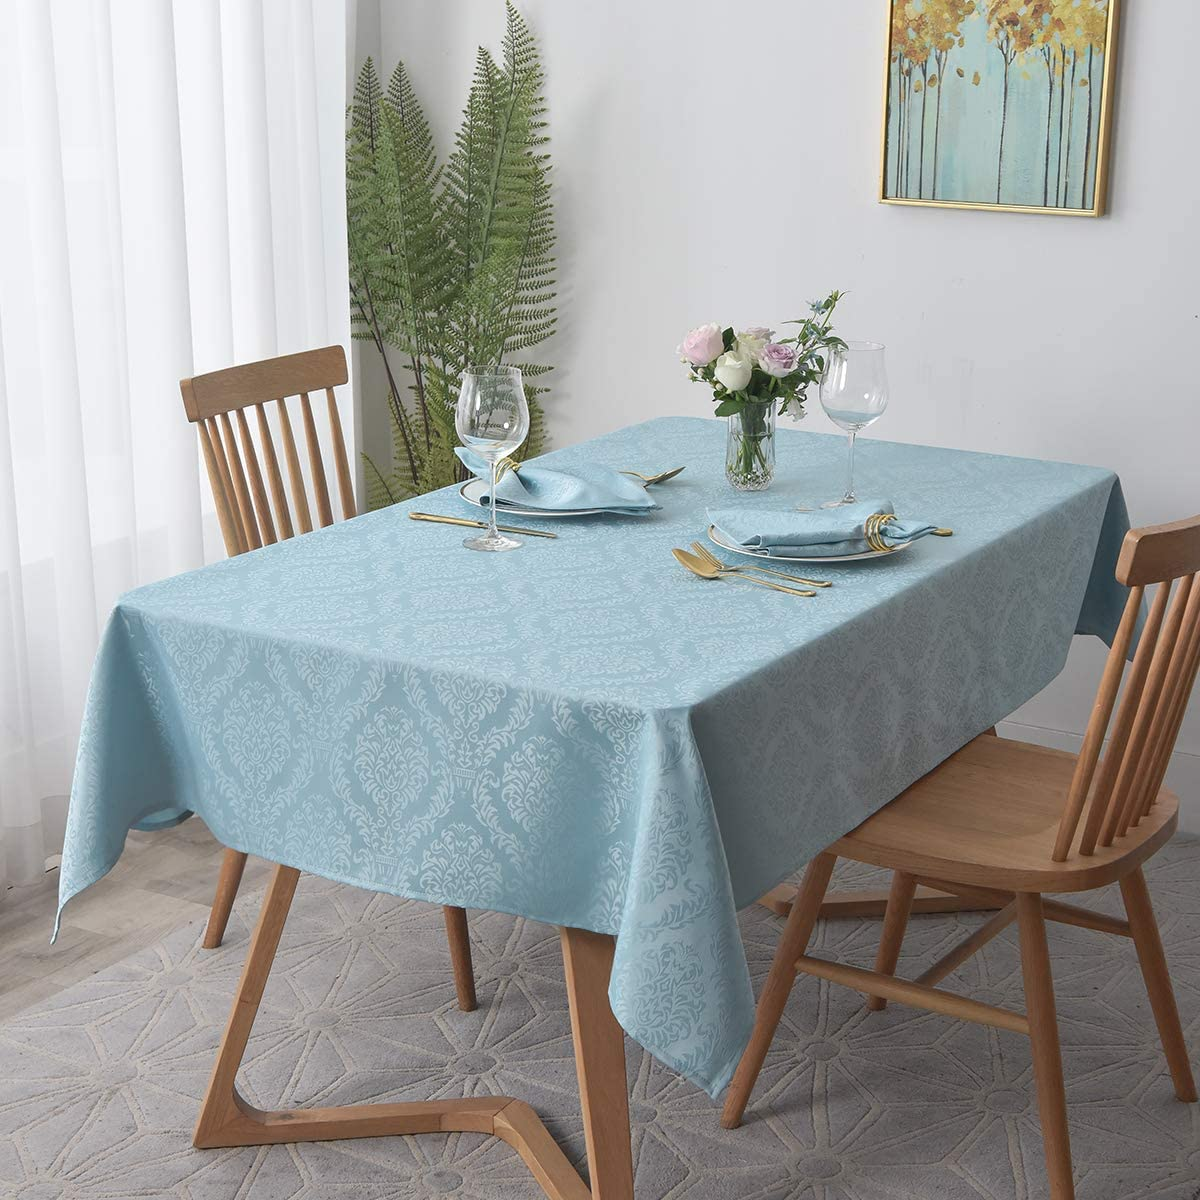 maxmill Square Table Cloth Damask Pattern Spillproof Wrinkle Resistant Oil Proof Heavy Weight Soft Tablecloth for Kitchen Dinning Tabletop Outdoor Picnic Square 52 x 52 Inch Blue Haze